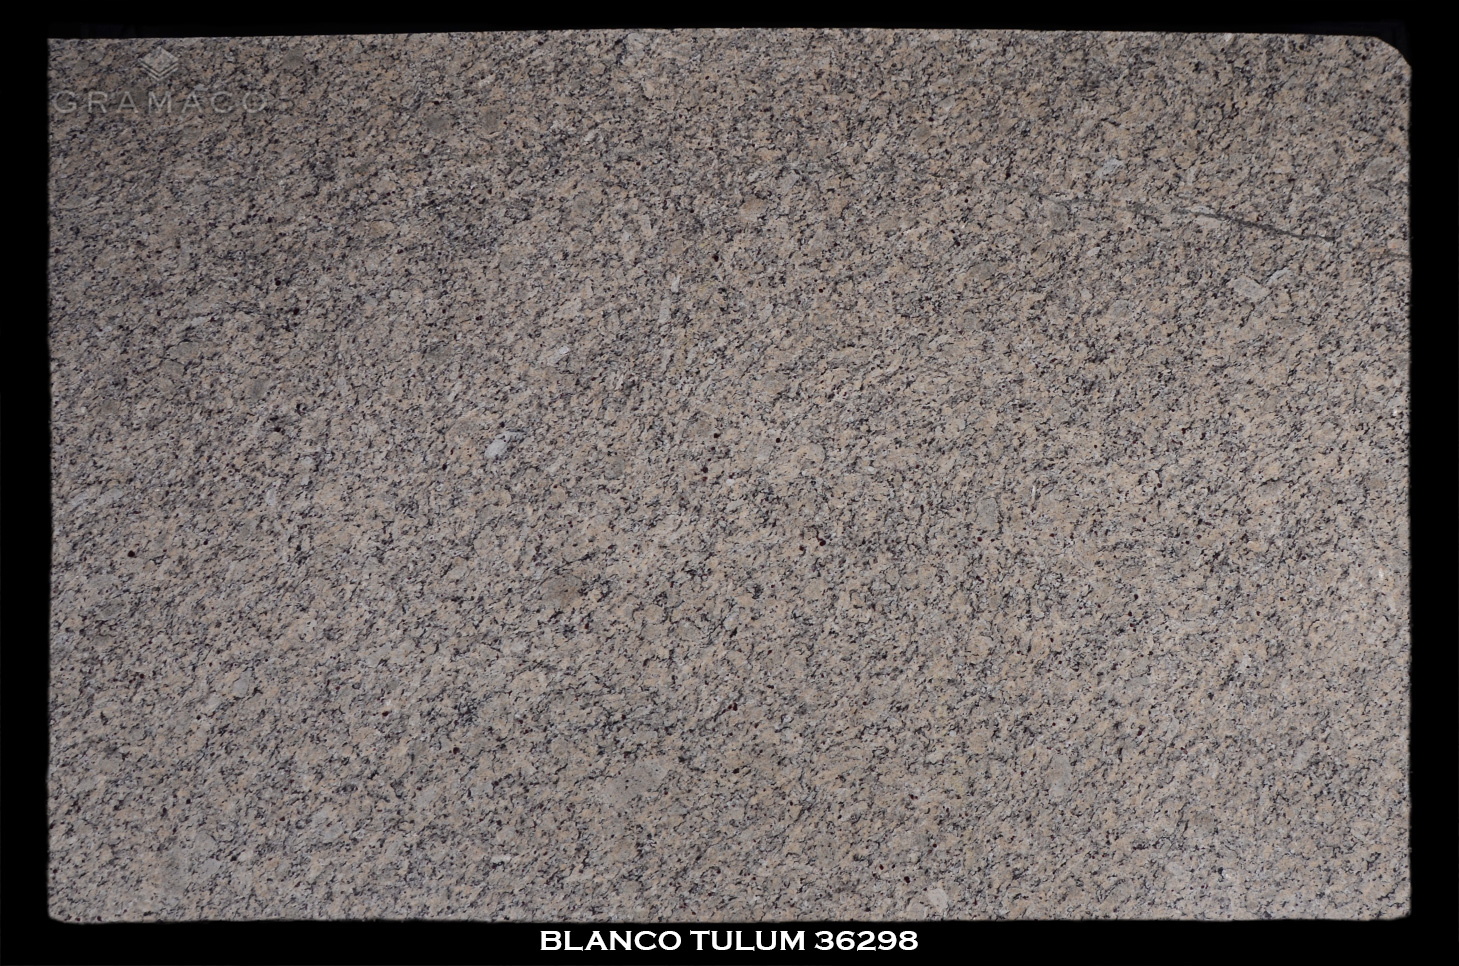 BLANCO-TULUM-36298--FULL-SLAB-BLACK